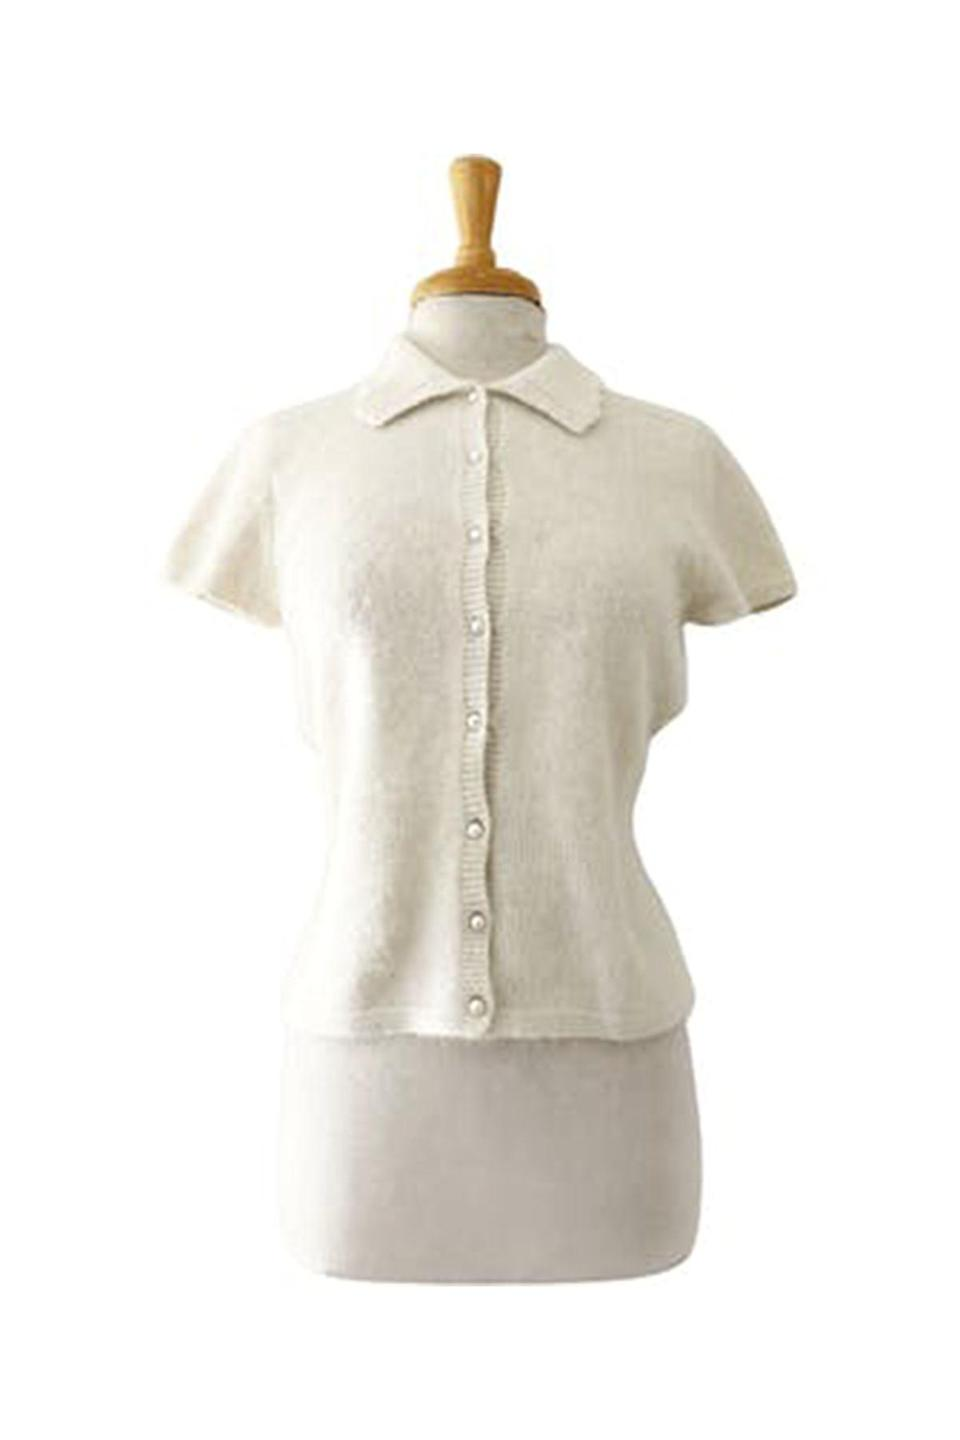 """<p><strong>Thrilling Vintage</strong></p><p>shopthrilling.com</p><p><strong>$52.00</strong></p><p><a href=""""https://shopthrilling.com/collections/clothing/products/90-s-ivory-pearl-button-up-short-sleeve-sweater-top-by-lauren-ralph-lauren"""" rel=""""nofollow noopener"""" target=""""_blank"""" data-ylk=""""slk:Shop Now"""" class=""""link rapid-noclick-resp"""">Shop Now</a></p><p>Shopping second-hand is always the most sustainable route, and Thrilling Vintage makes finding the best vintage pieces an effortless feat.</p>"""